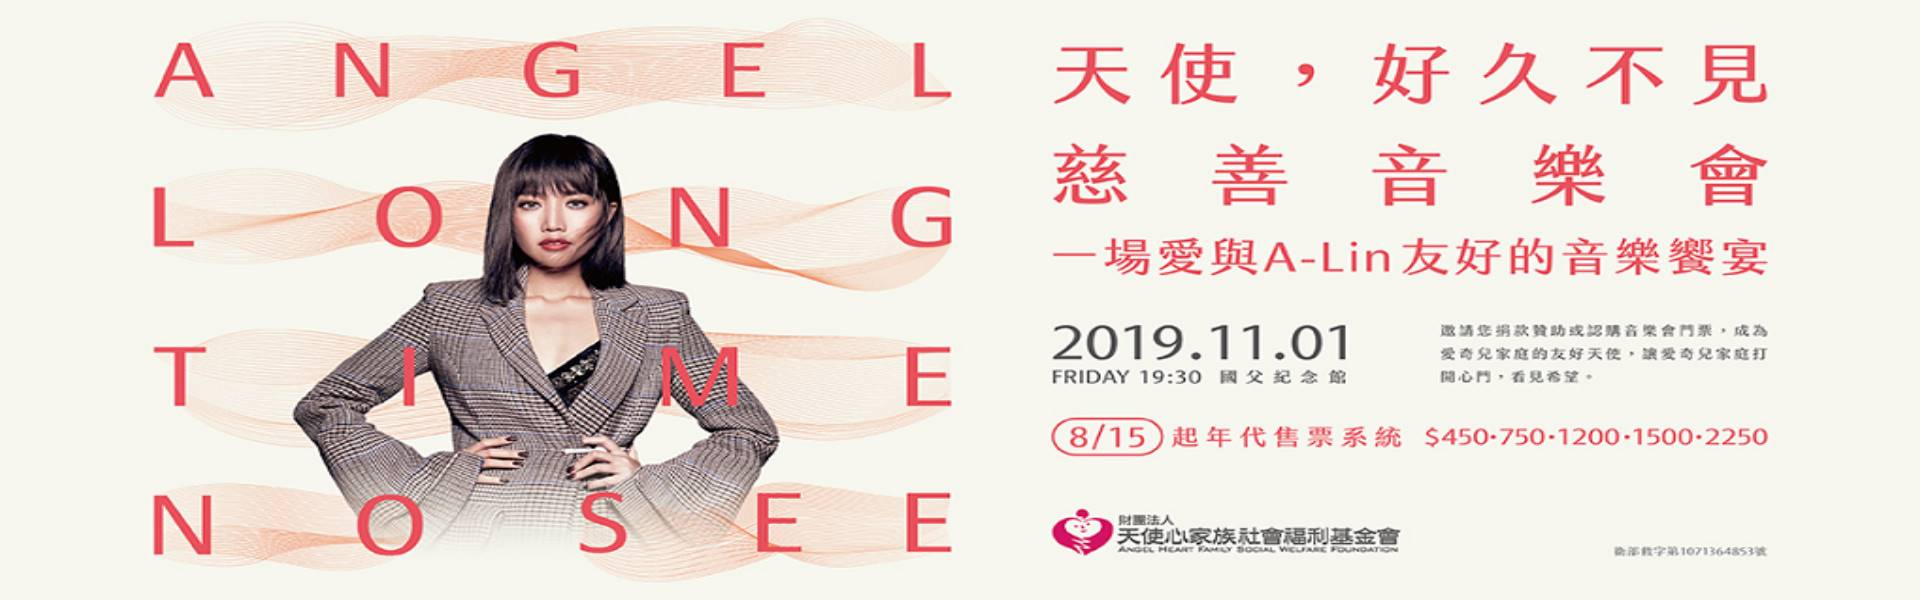 2019「Angel Long Time No See」Angel Heart Family Charity Concert[另開新視窗]